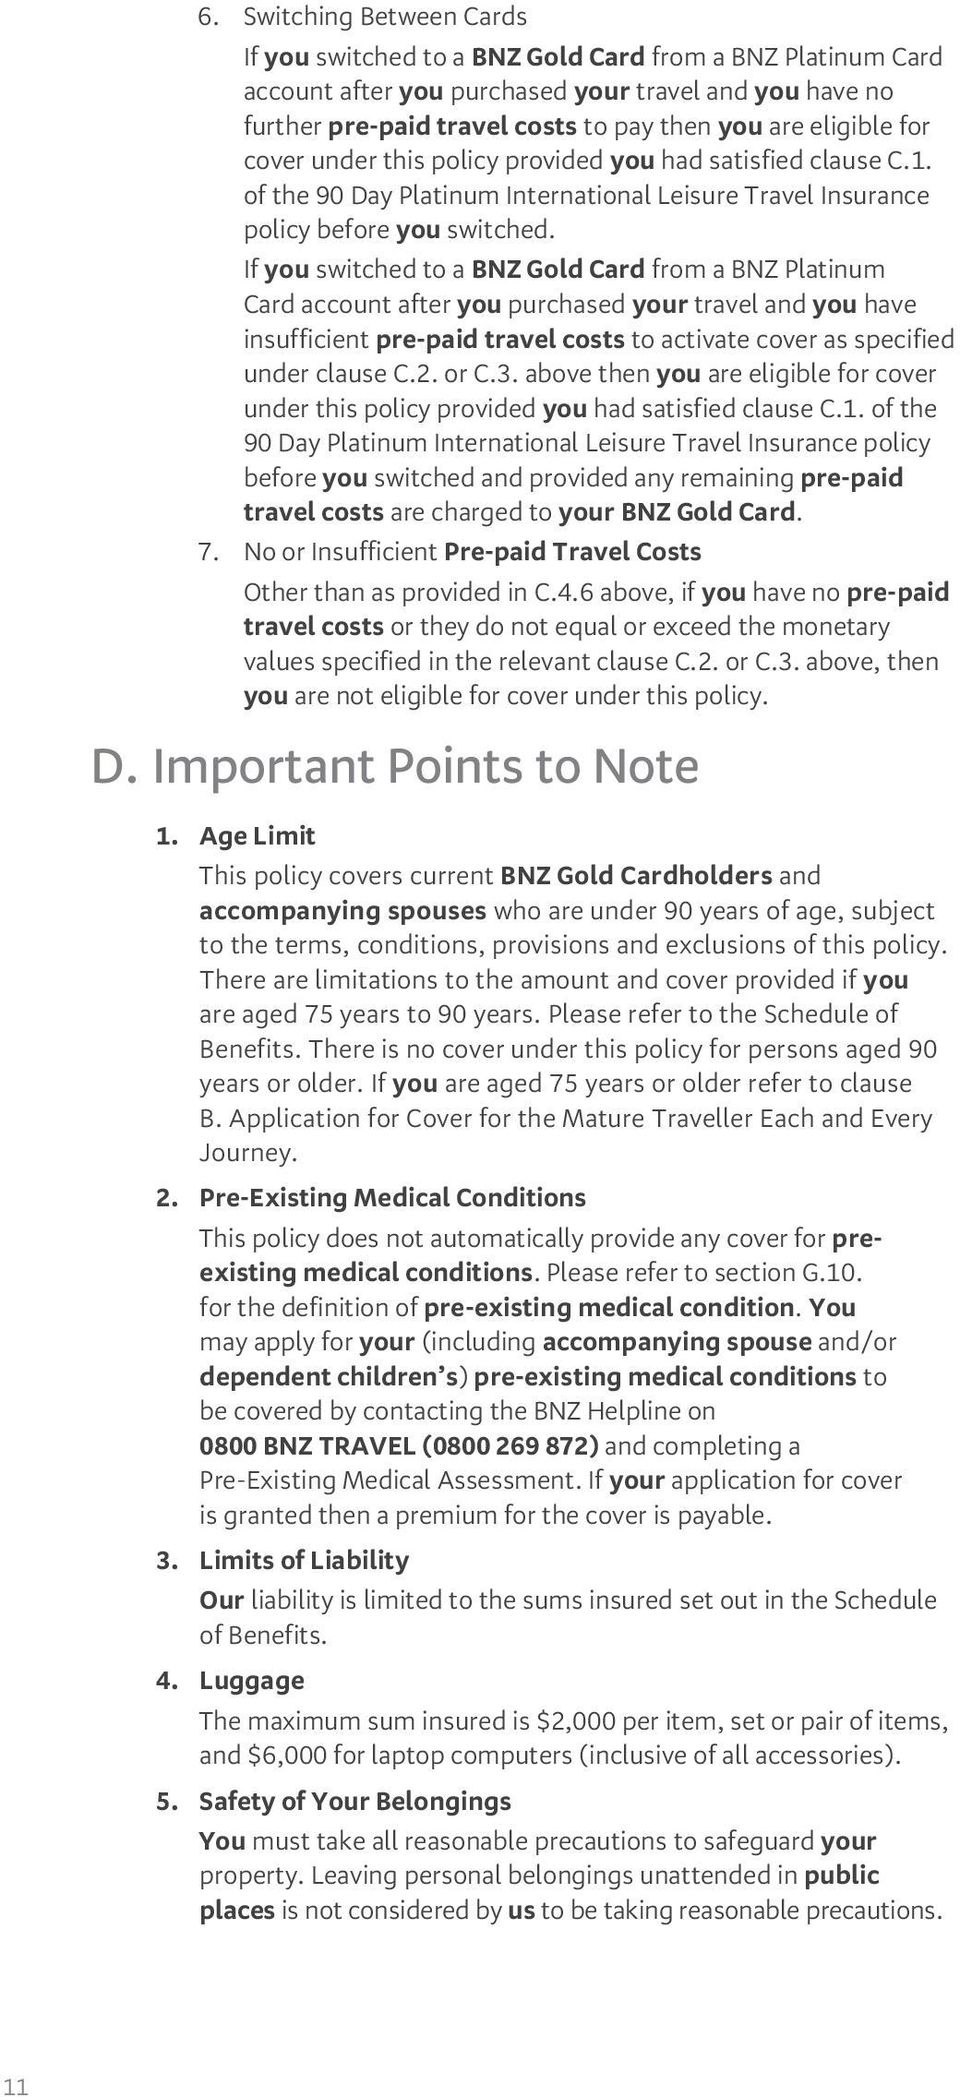 If you switched to a BNZ Gold Card from a BNZ Platinum Card account after you purchased your travel and you have insufficient pre-paid travel costs to activate cover as specified under clause C.2.